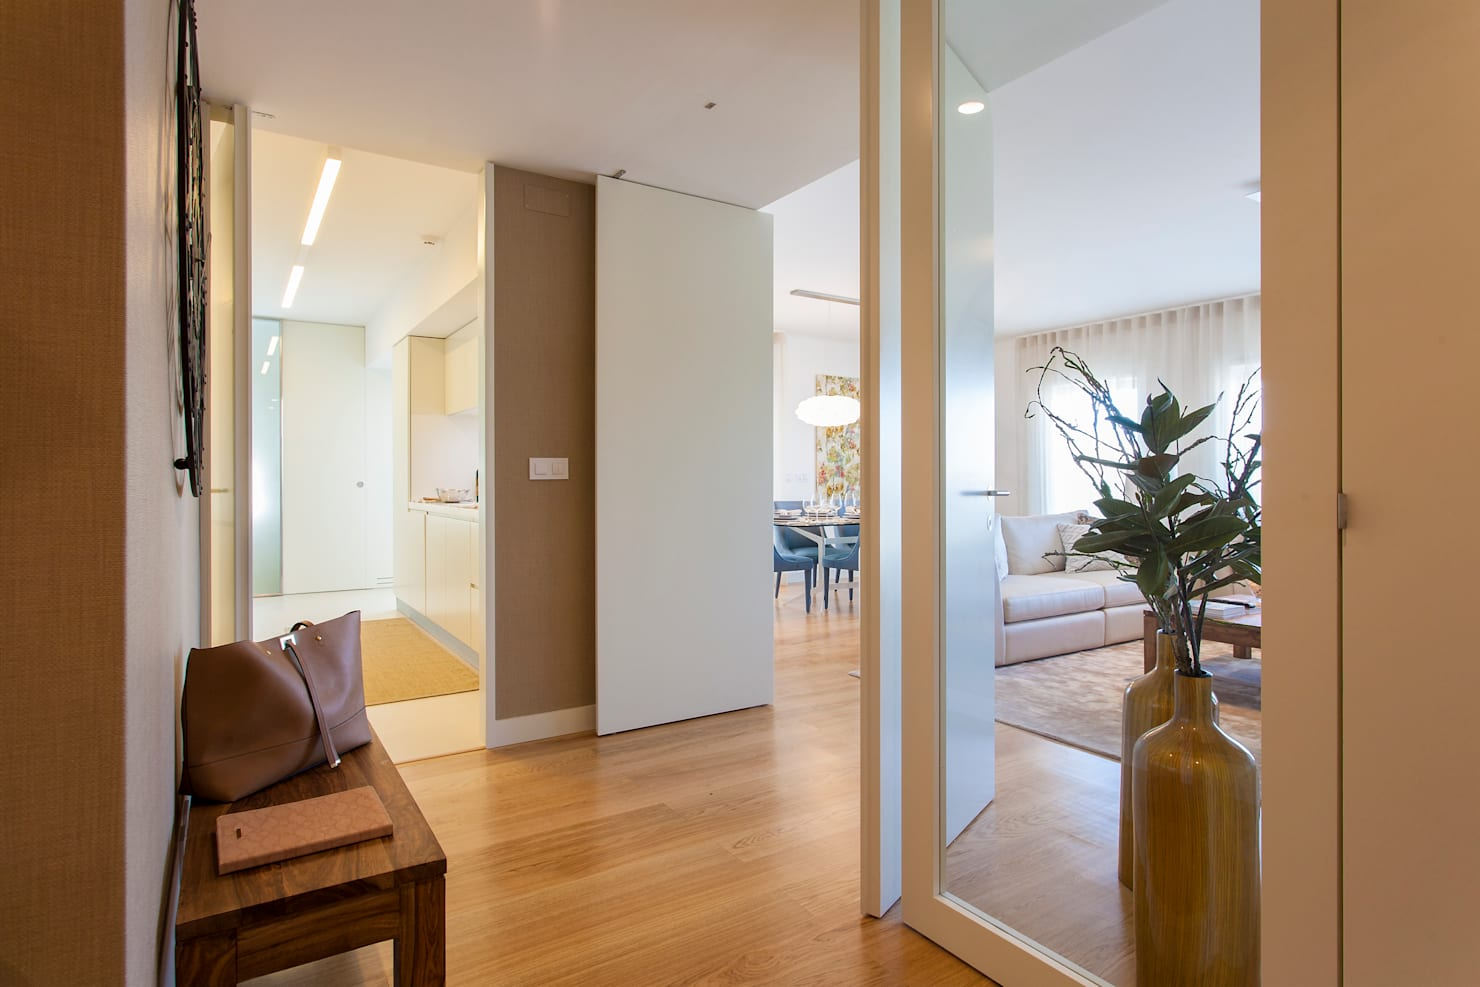 7 marvellously modern apartments to make your day